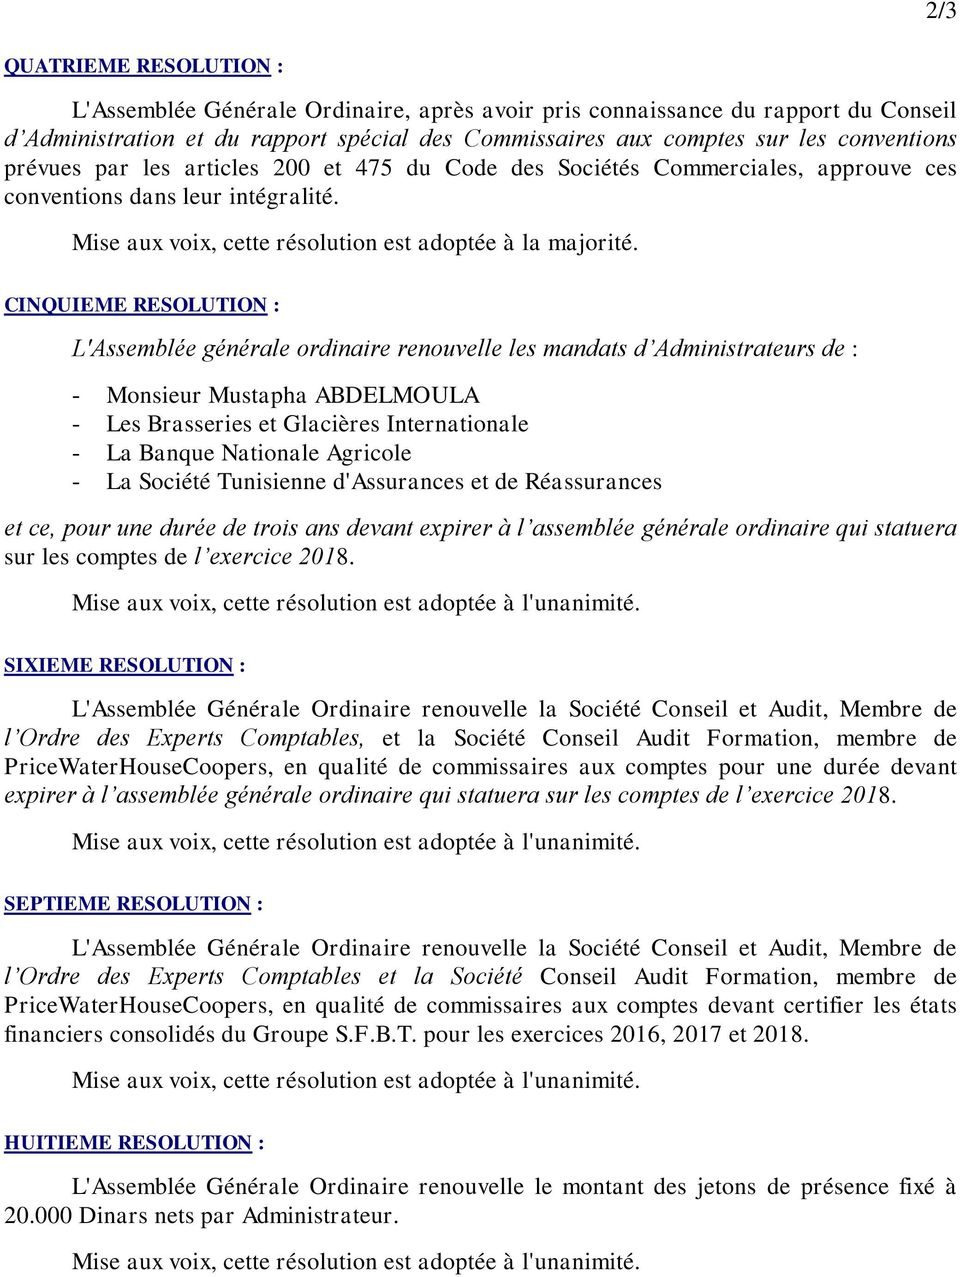 CINQUIEME RESOLUTION : L'Assemblée générale ordinaire renouvelle les mandats d Administrateurs de : - Monsieur Mustapha ABDELMOULA - Les Brasseries et Glacières Internationale - La Banque Nationale